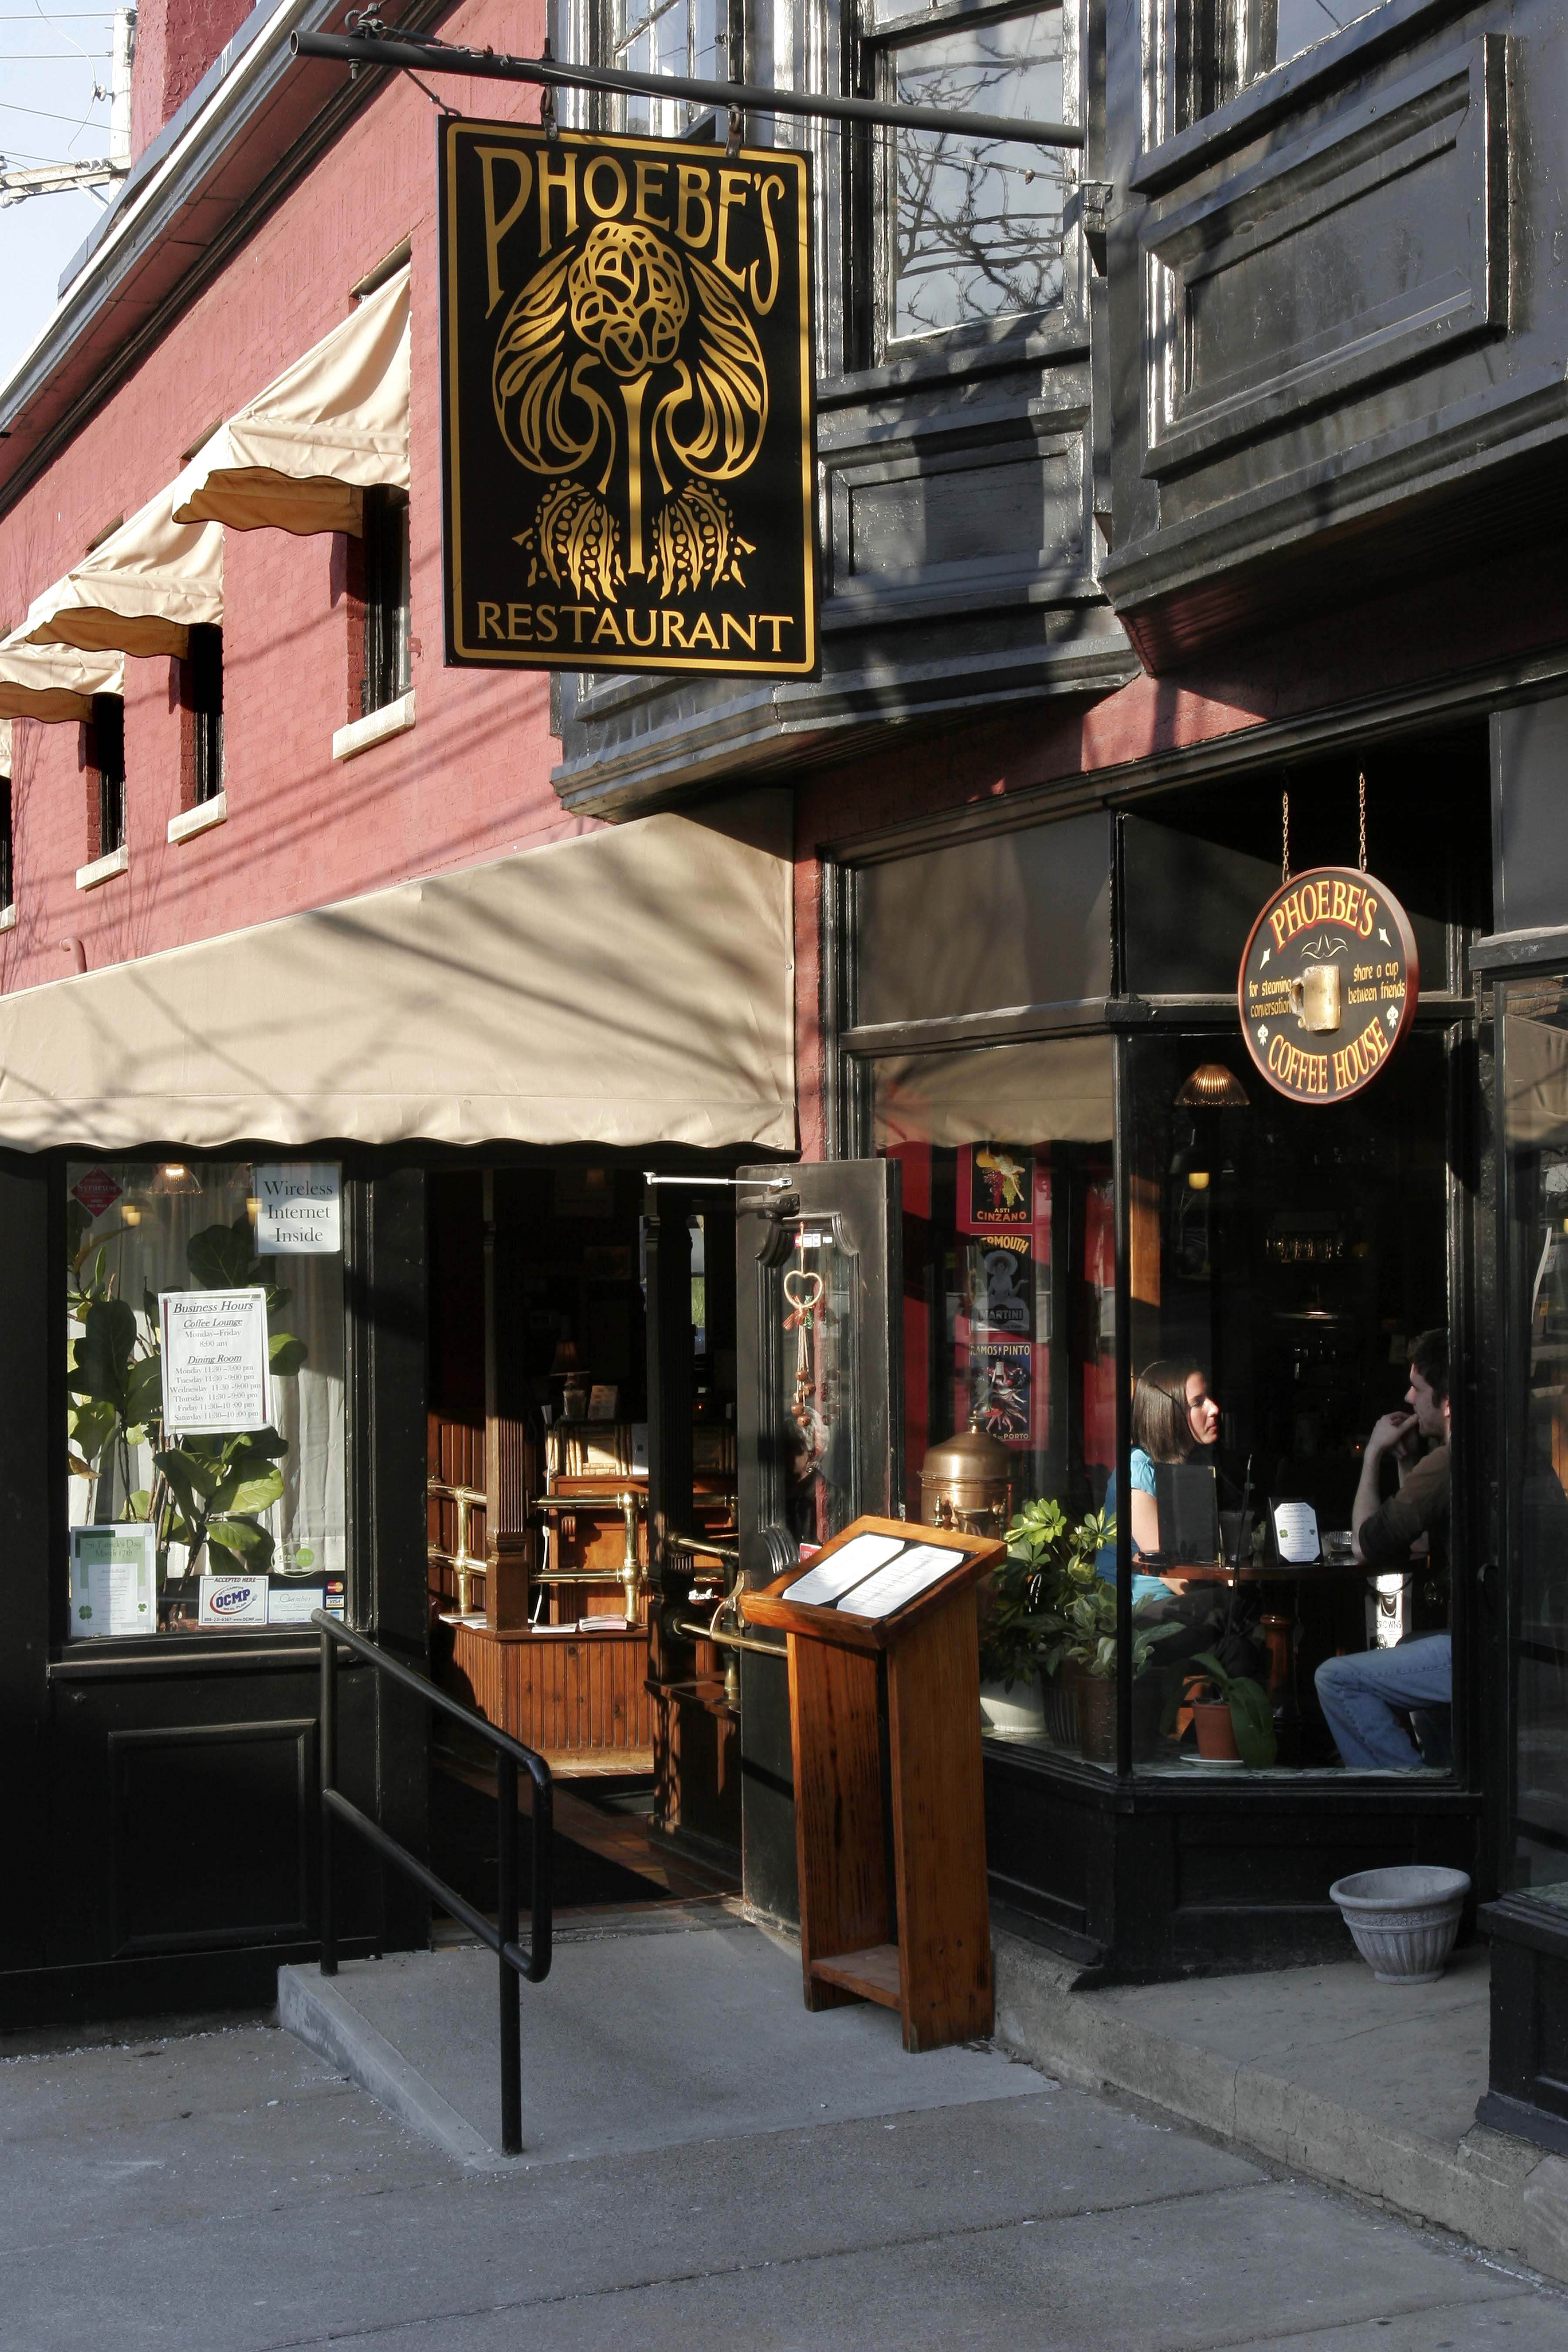 Phoebe S Restaurant Armory Square In Syracuse Ny Is The Pace To Relax